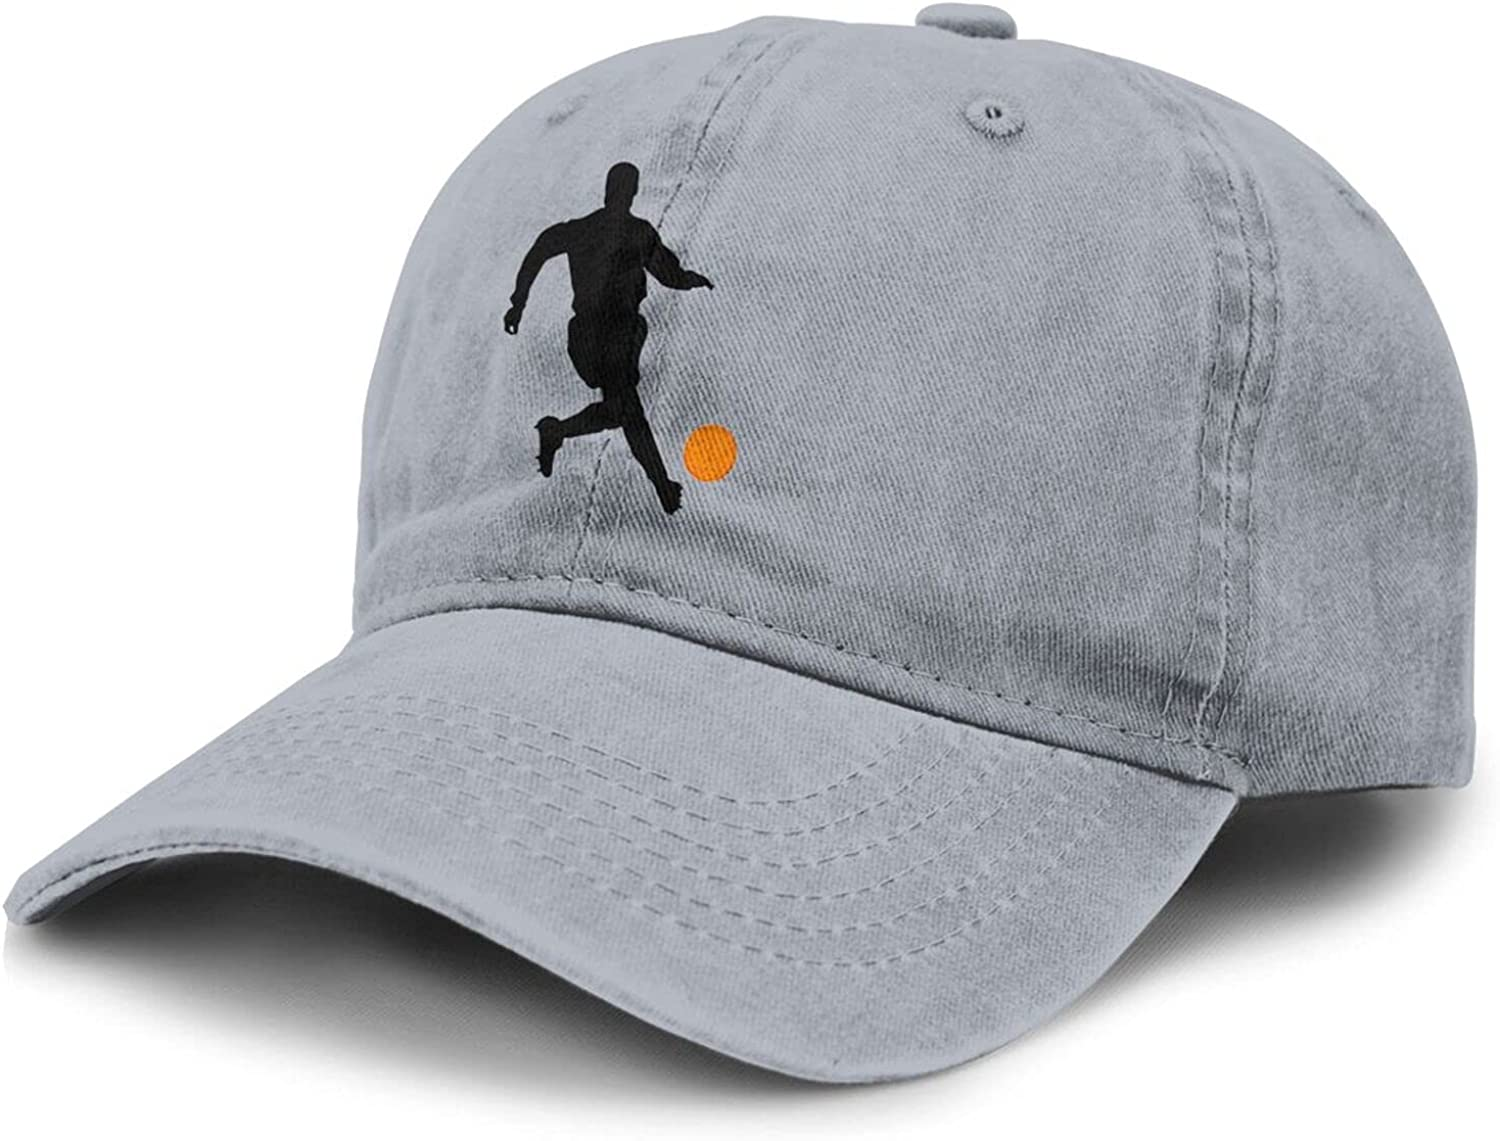 Soccer and Ball Moves Cheap and Durable Adult Cowboy Hat Unisex